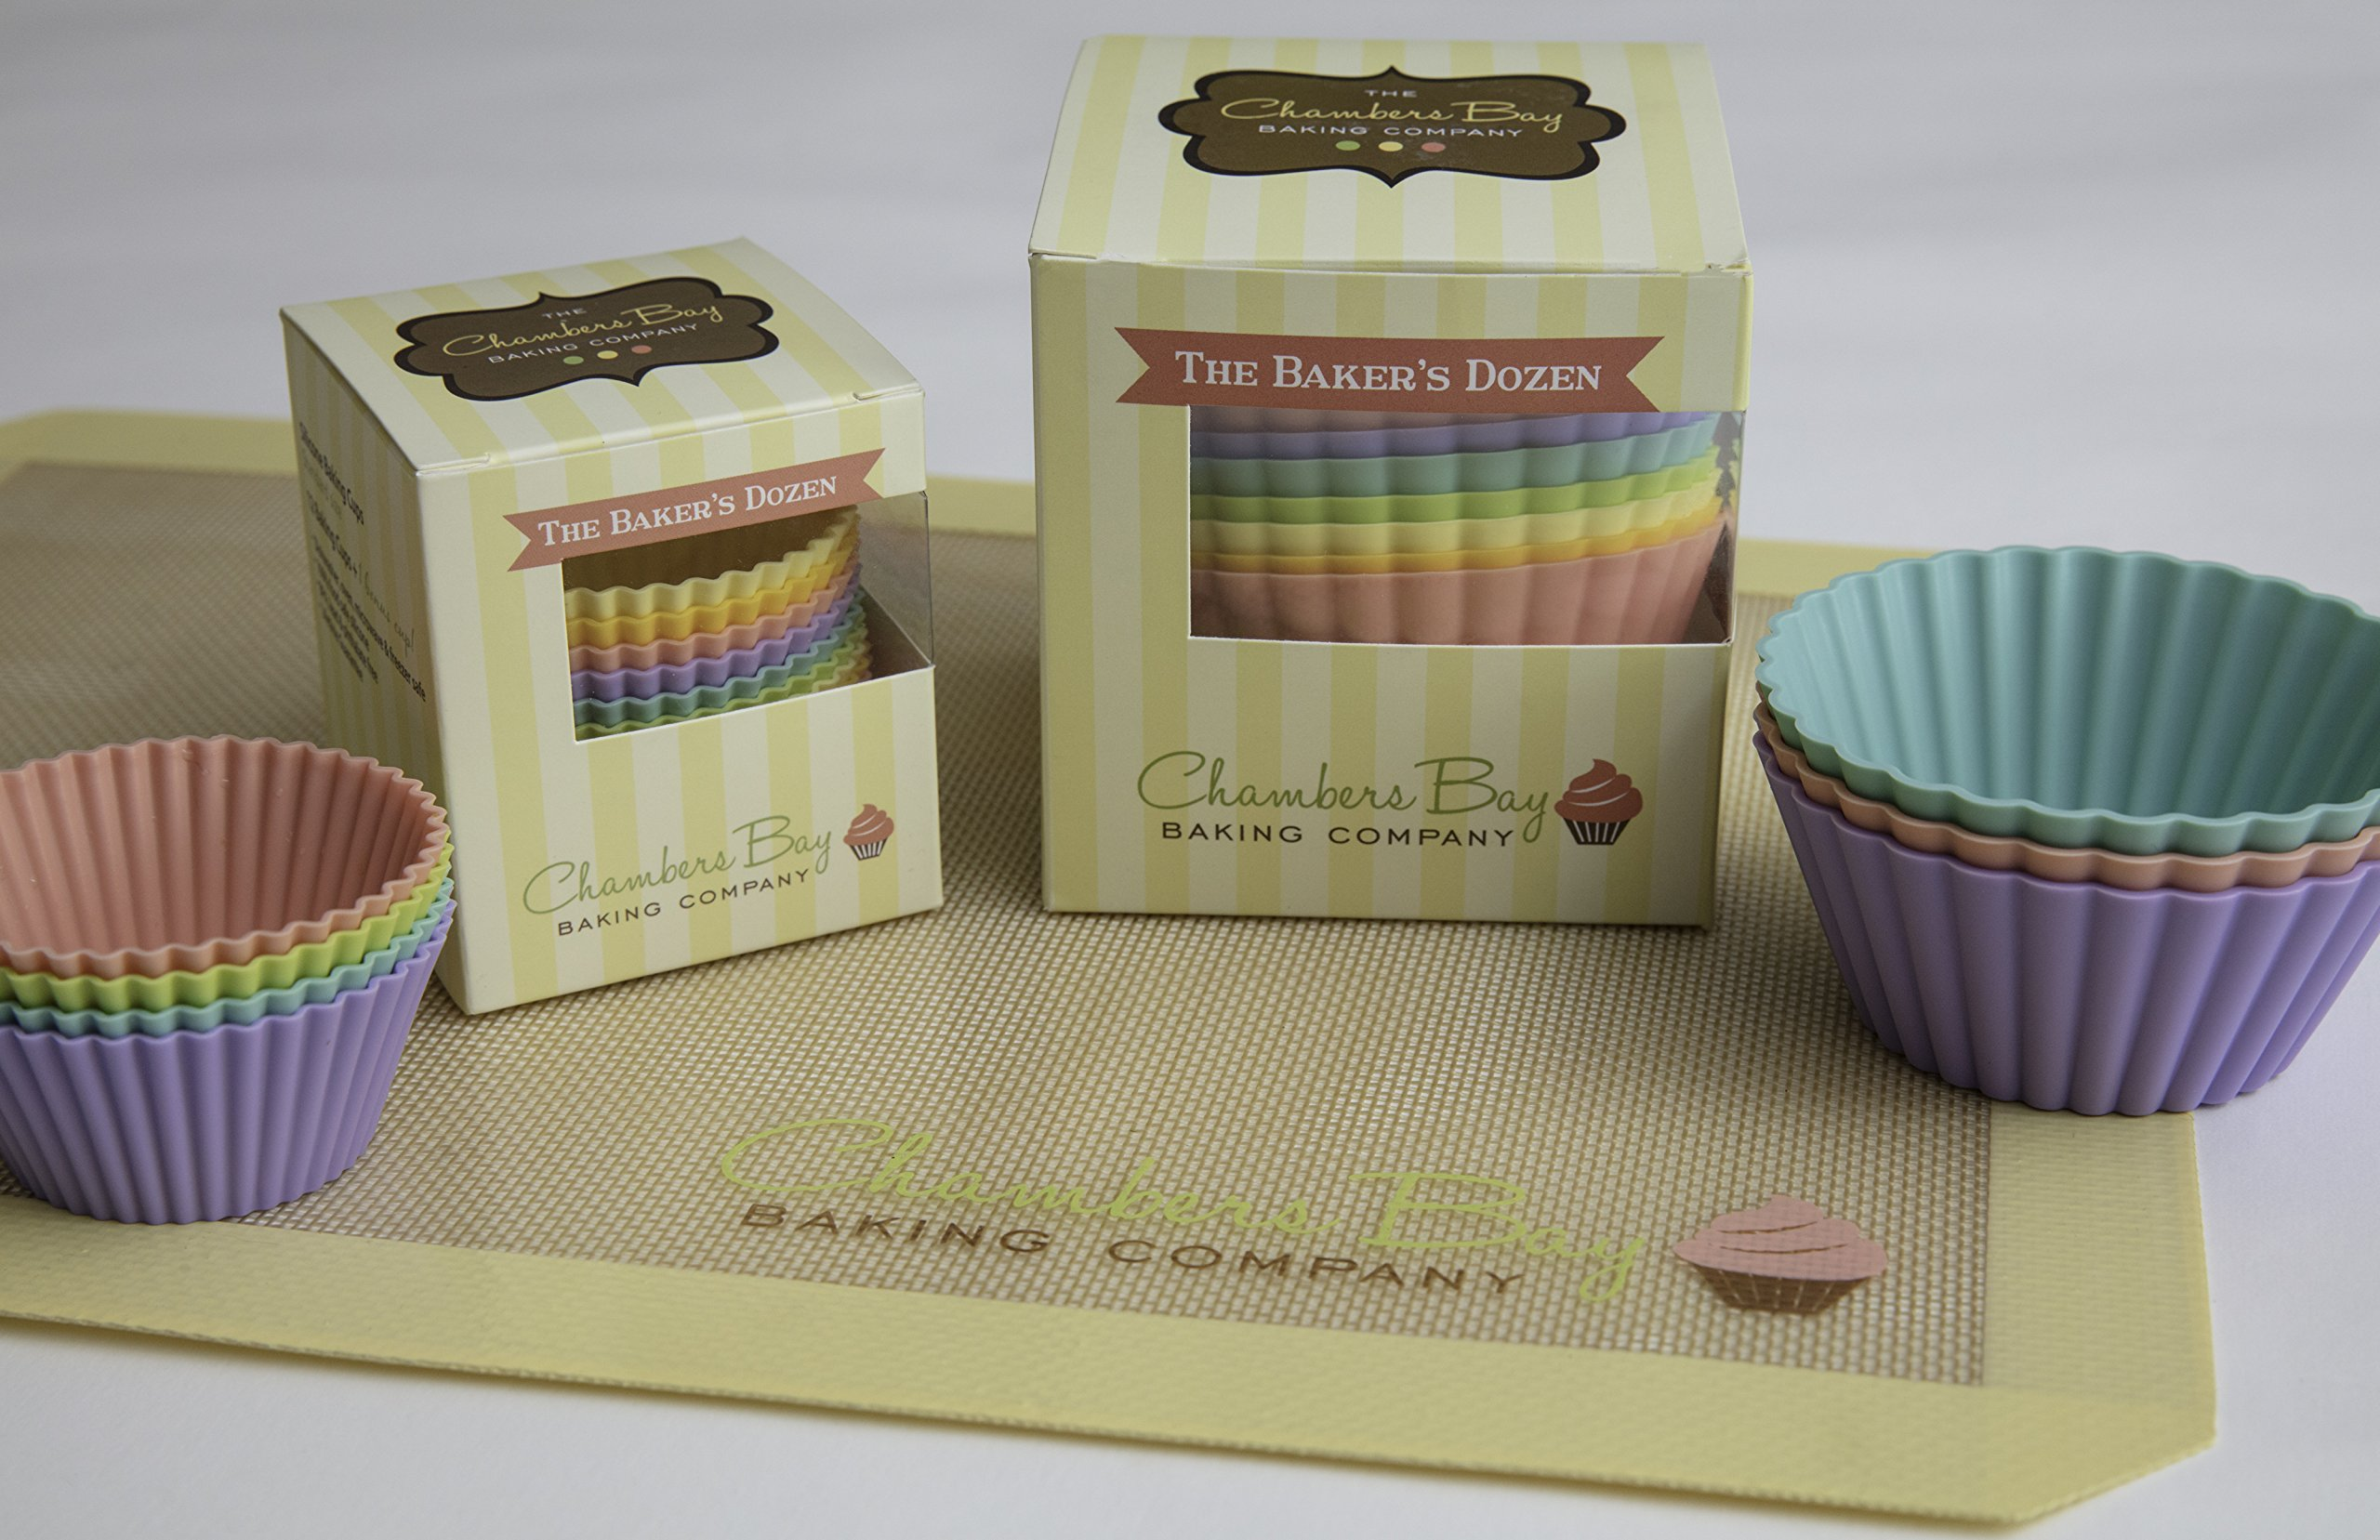 Silicone Baking Cups/13 Reusable Nonstick Cupcake Liners/Premium Muffin Molds - Stand Alone Cupcake Holders - No BPA - Gift Set - 6 Designer Colors - Standard Size by Chambers Bay Baking Company (Image #7)